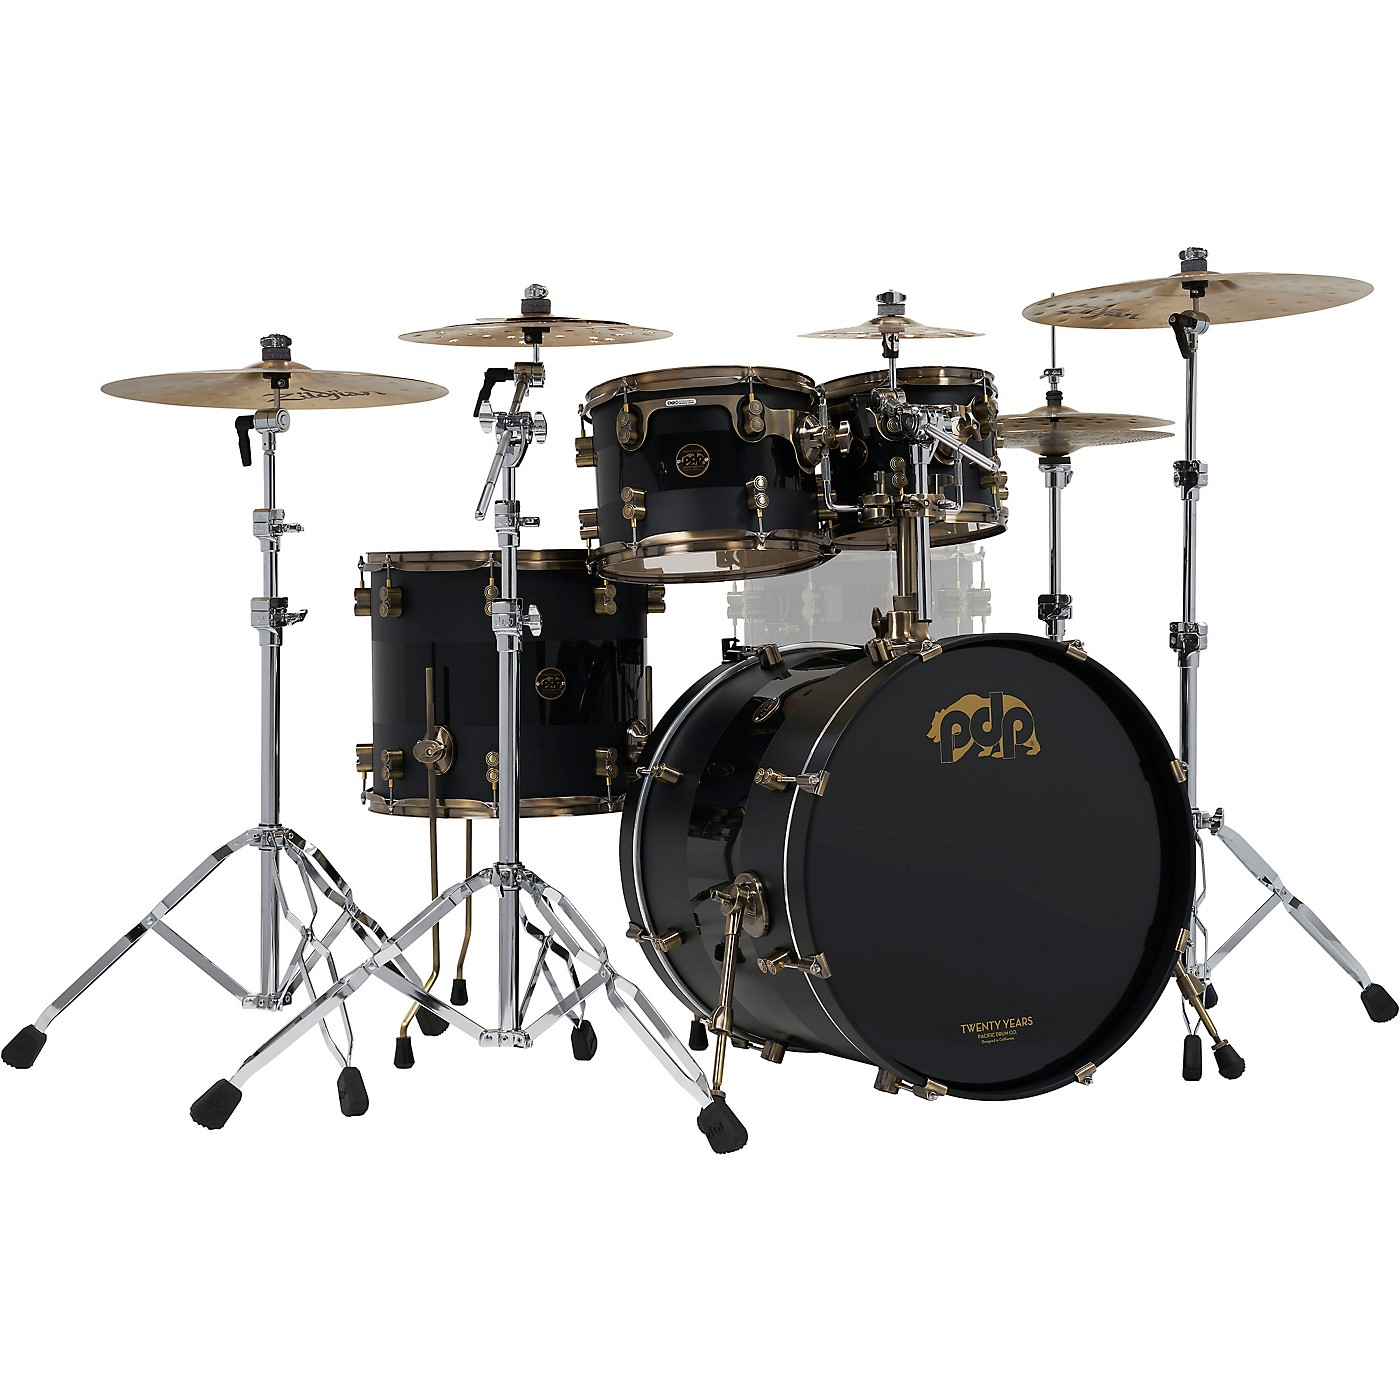 PDP by DW 4-Piece 20th Anniversary Shell Pack, Matte/Gloss Black w/Antique Bronze Hardware thumbnail